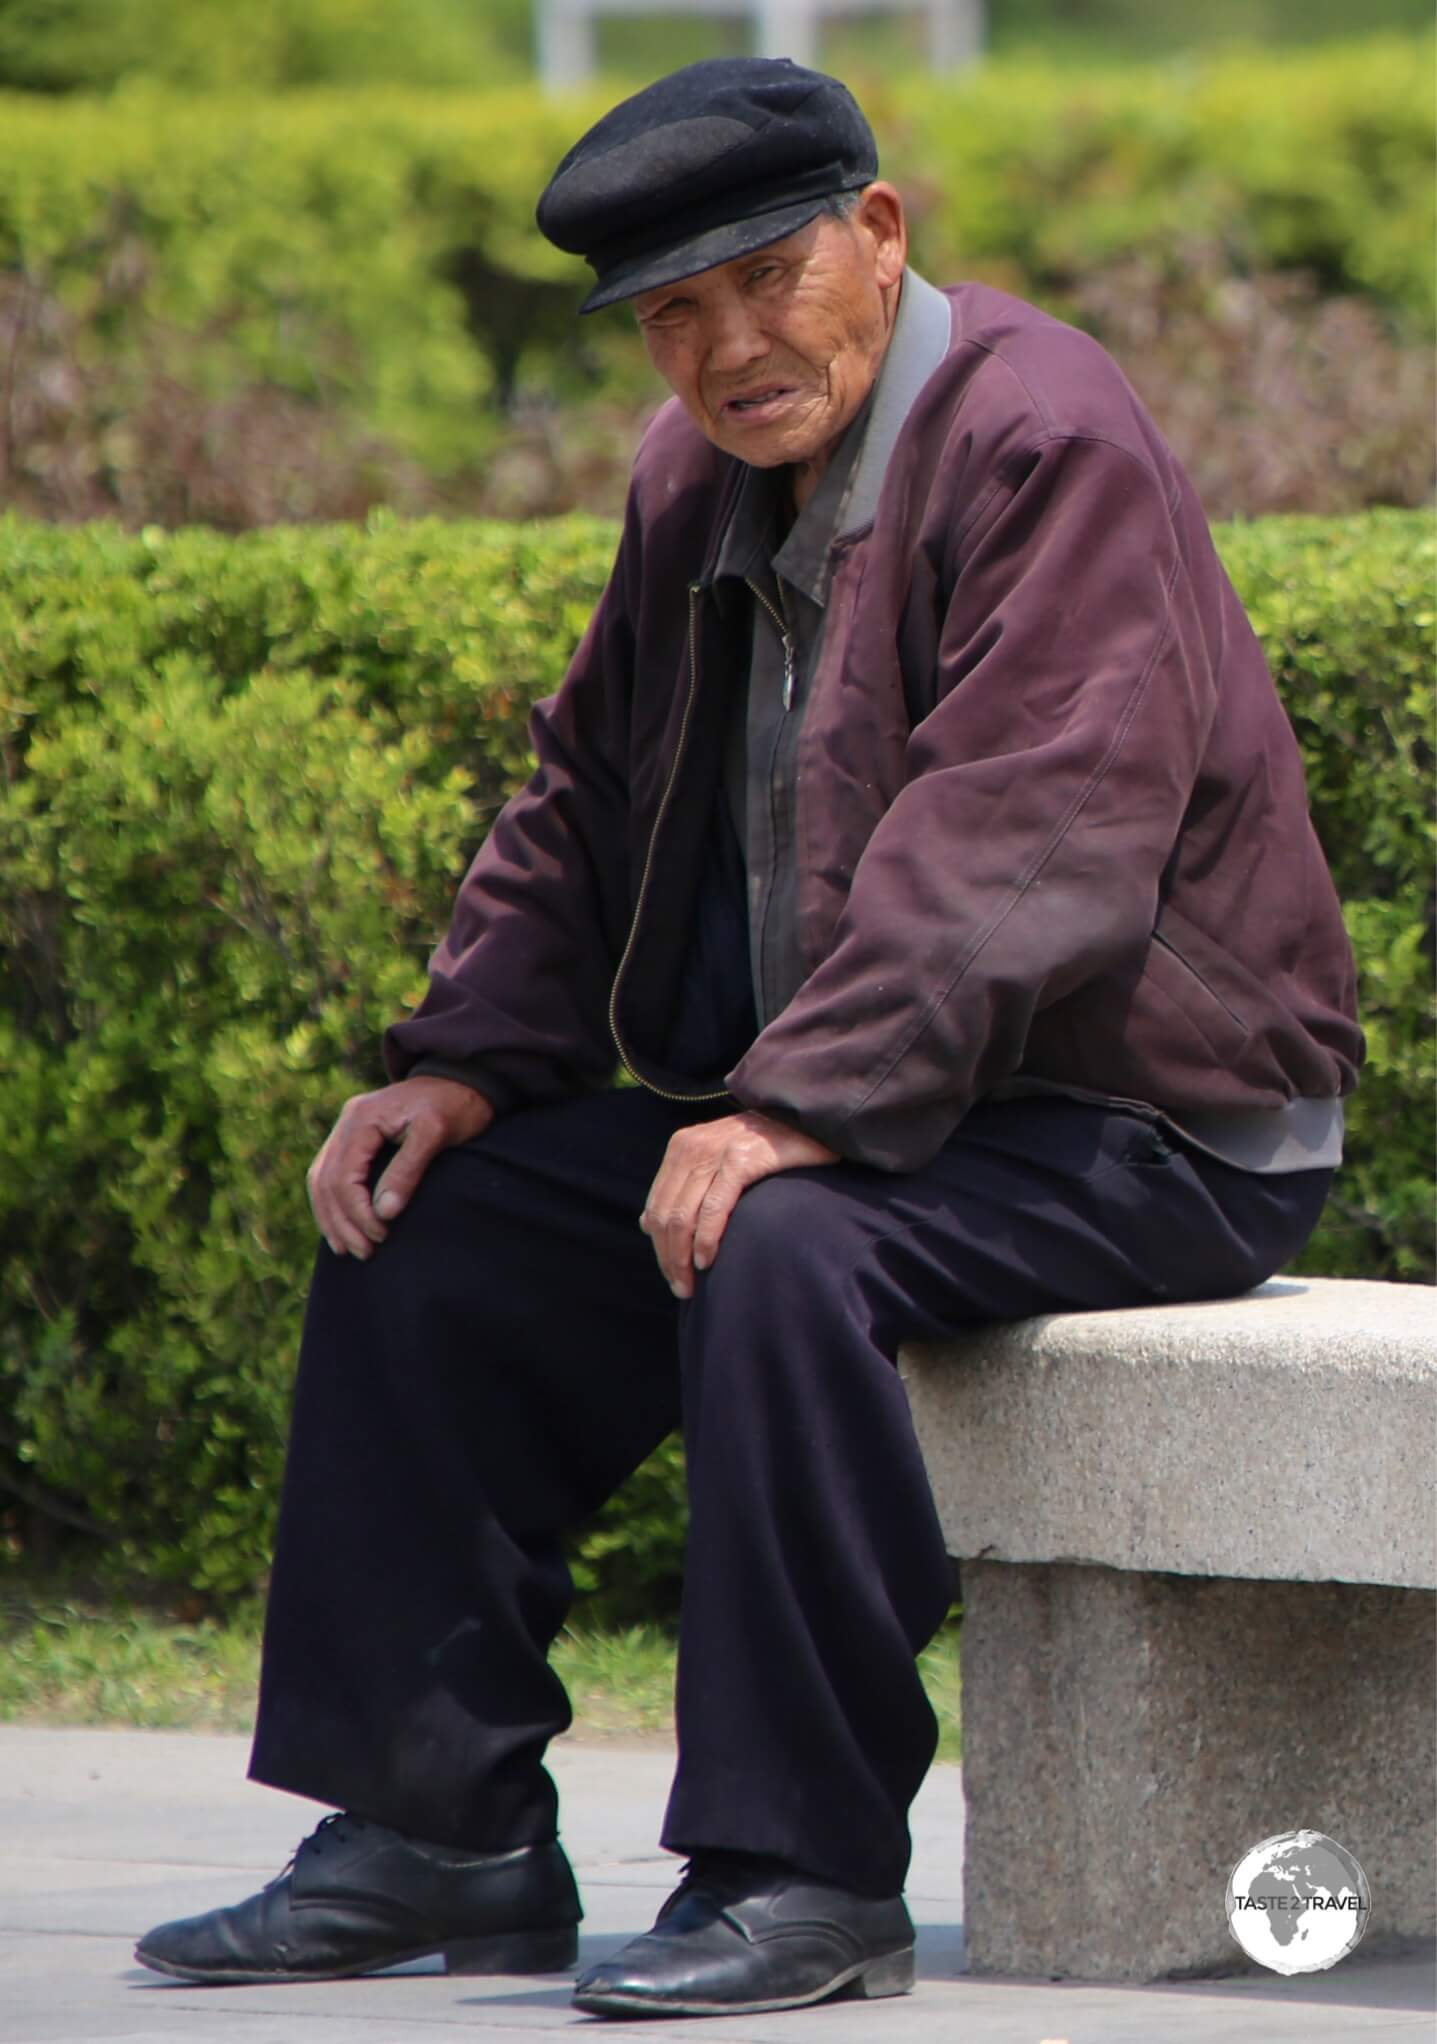 Old man relaxing in the park next to the monument.